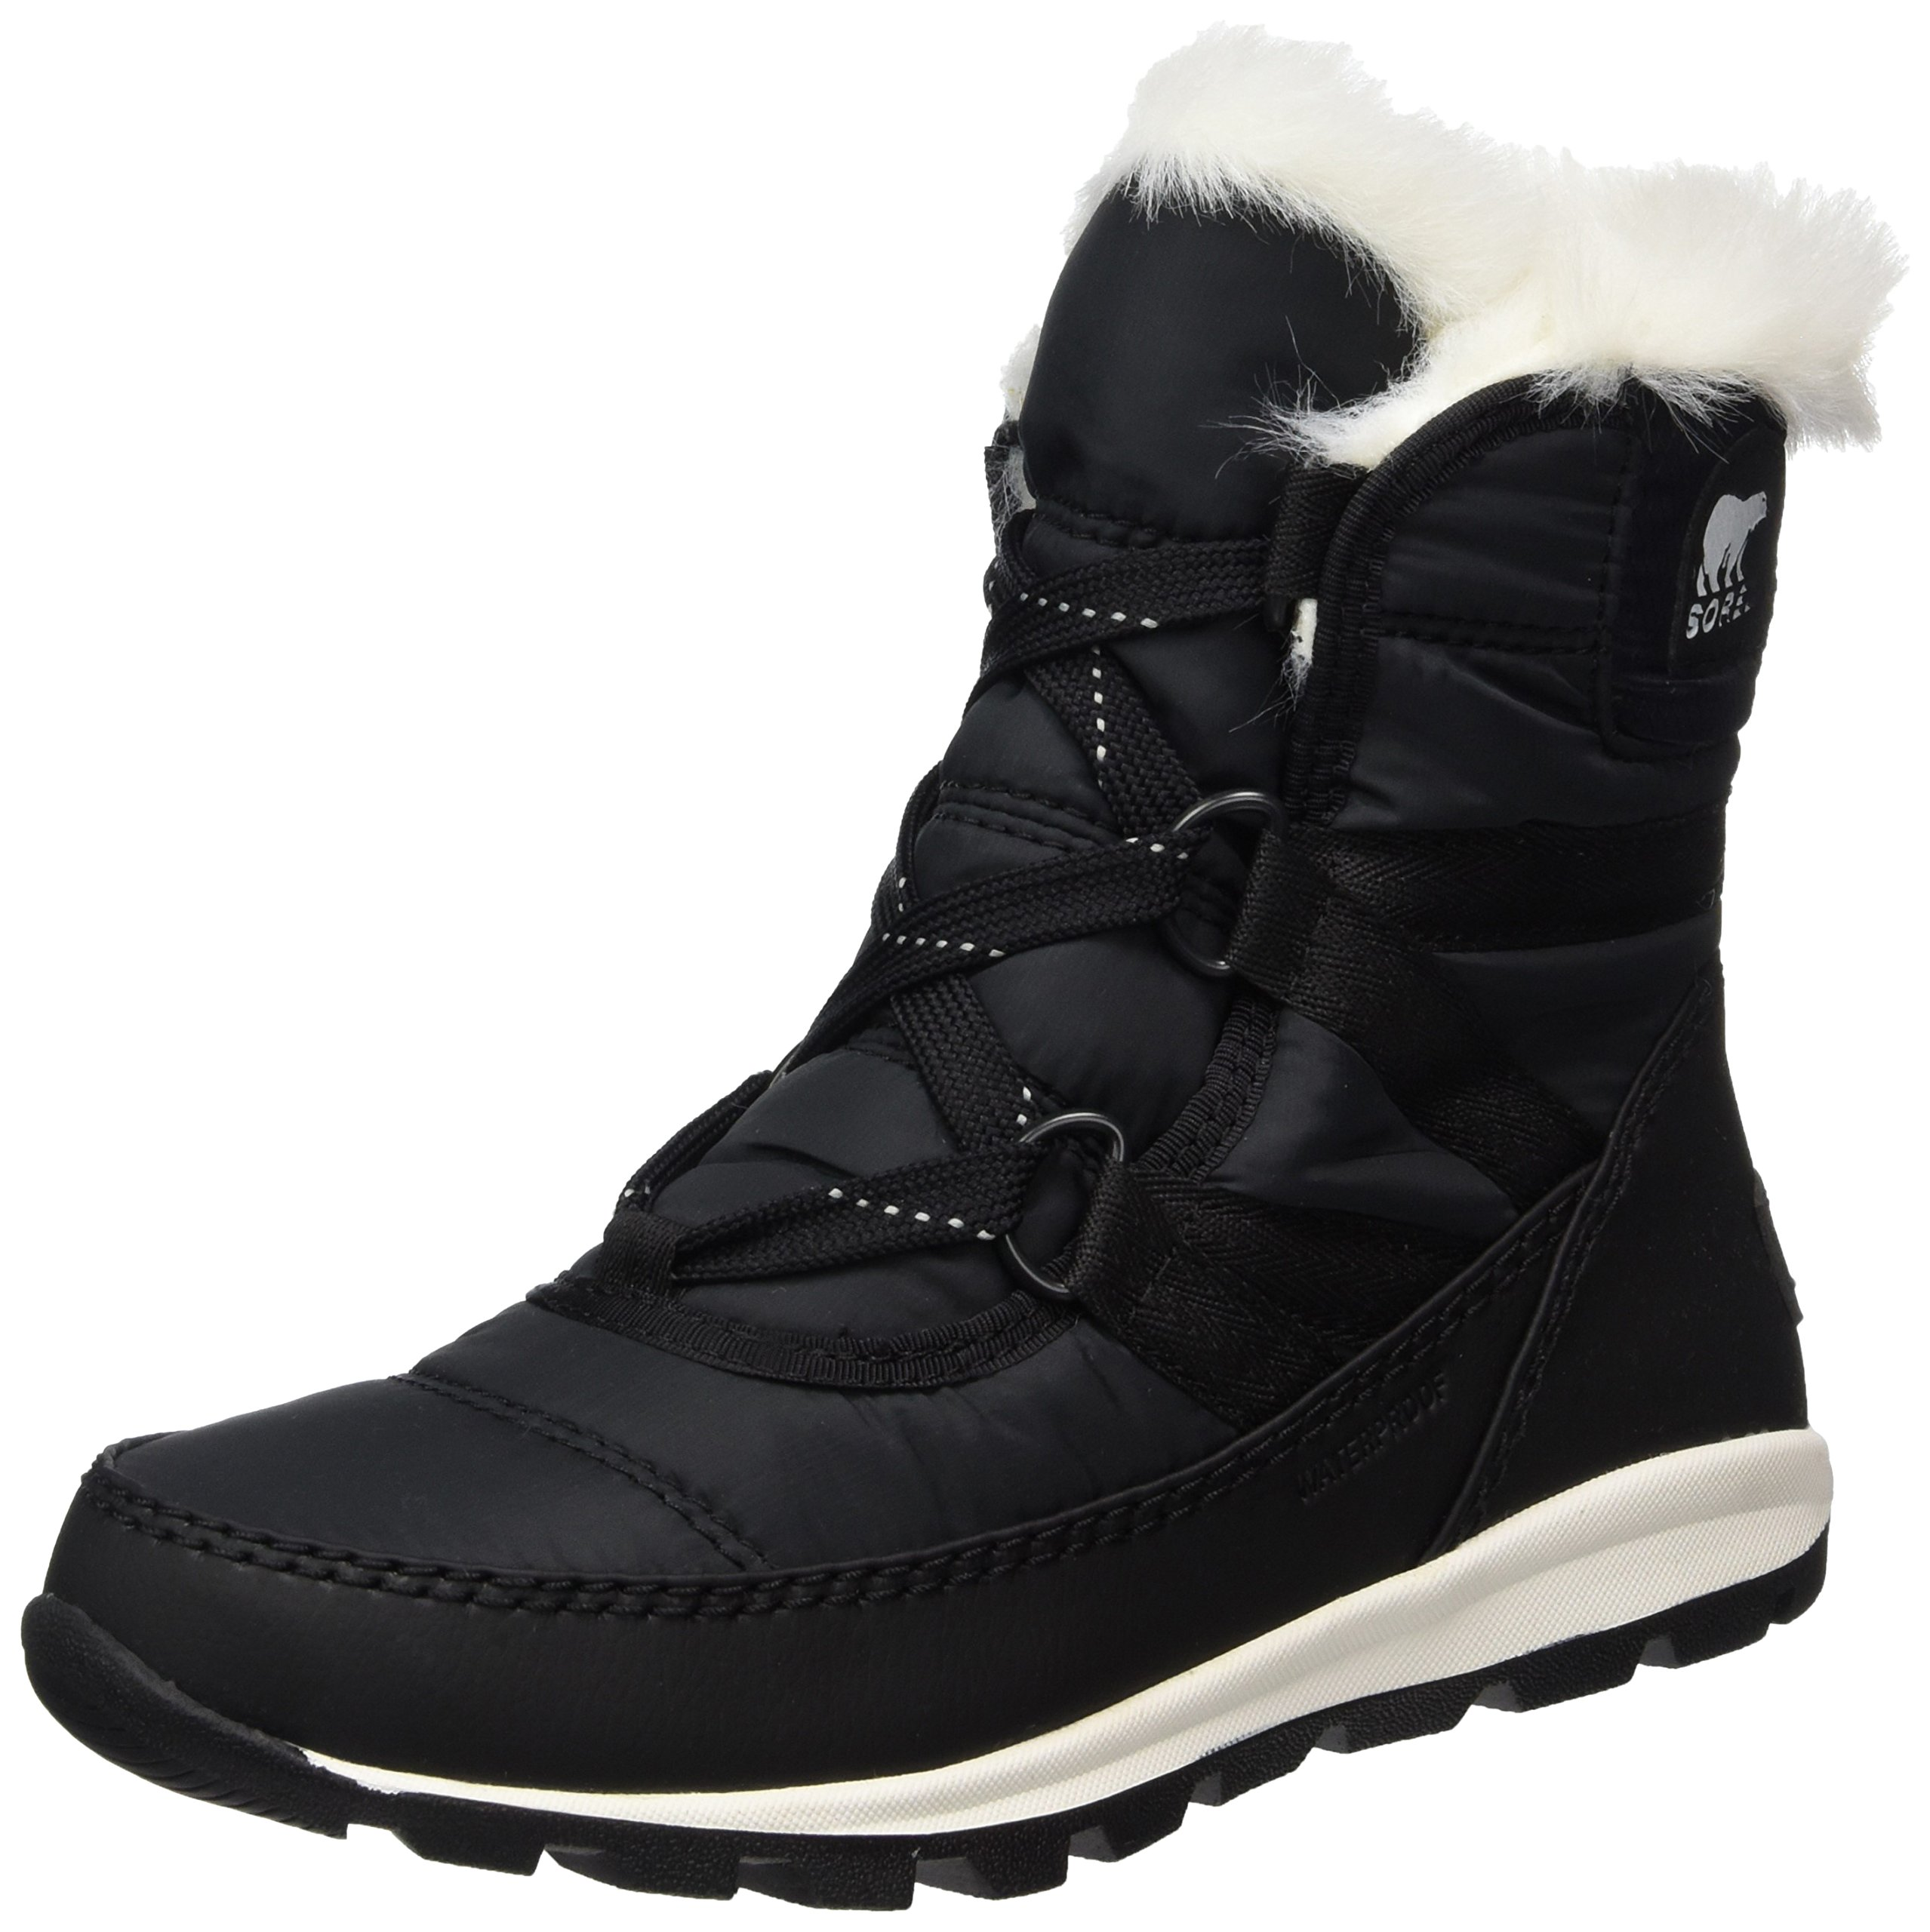 SOREL Youth Unisex Whitney Short Lace Non Shell Boot, Size: 4 M US Big Kid, Color Black/Sea Salt